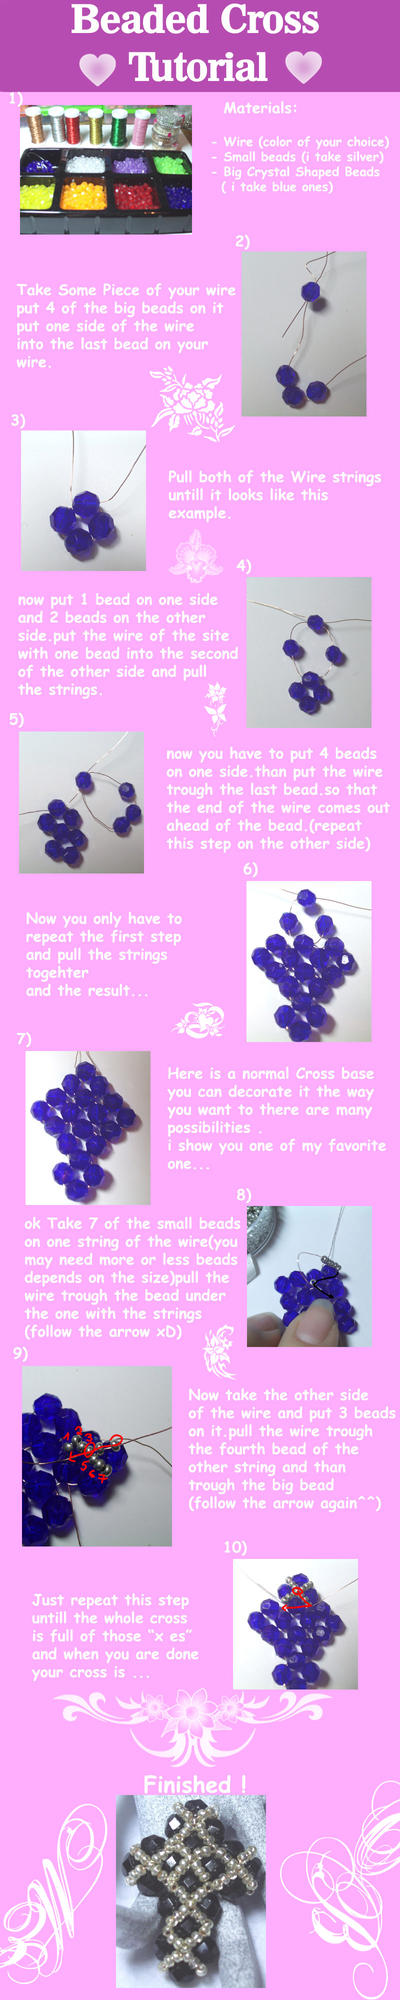 Beaded Cross Tutorial by lenneheartly